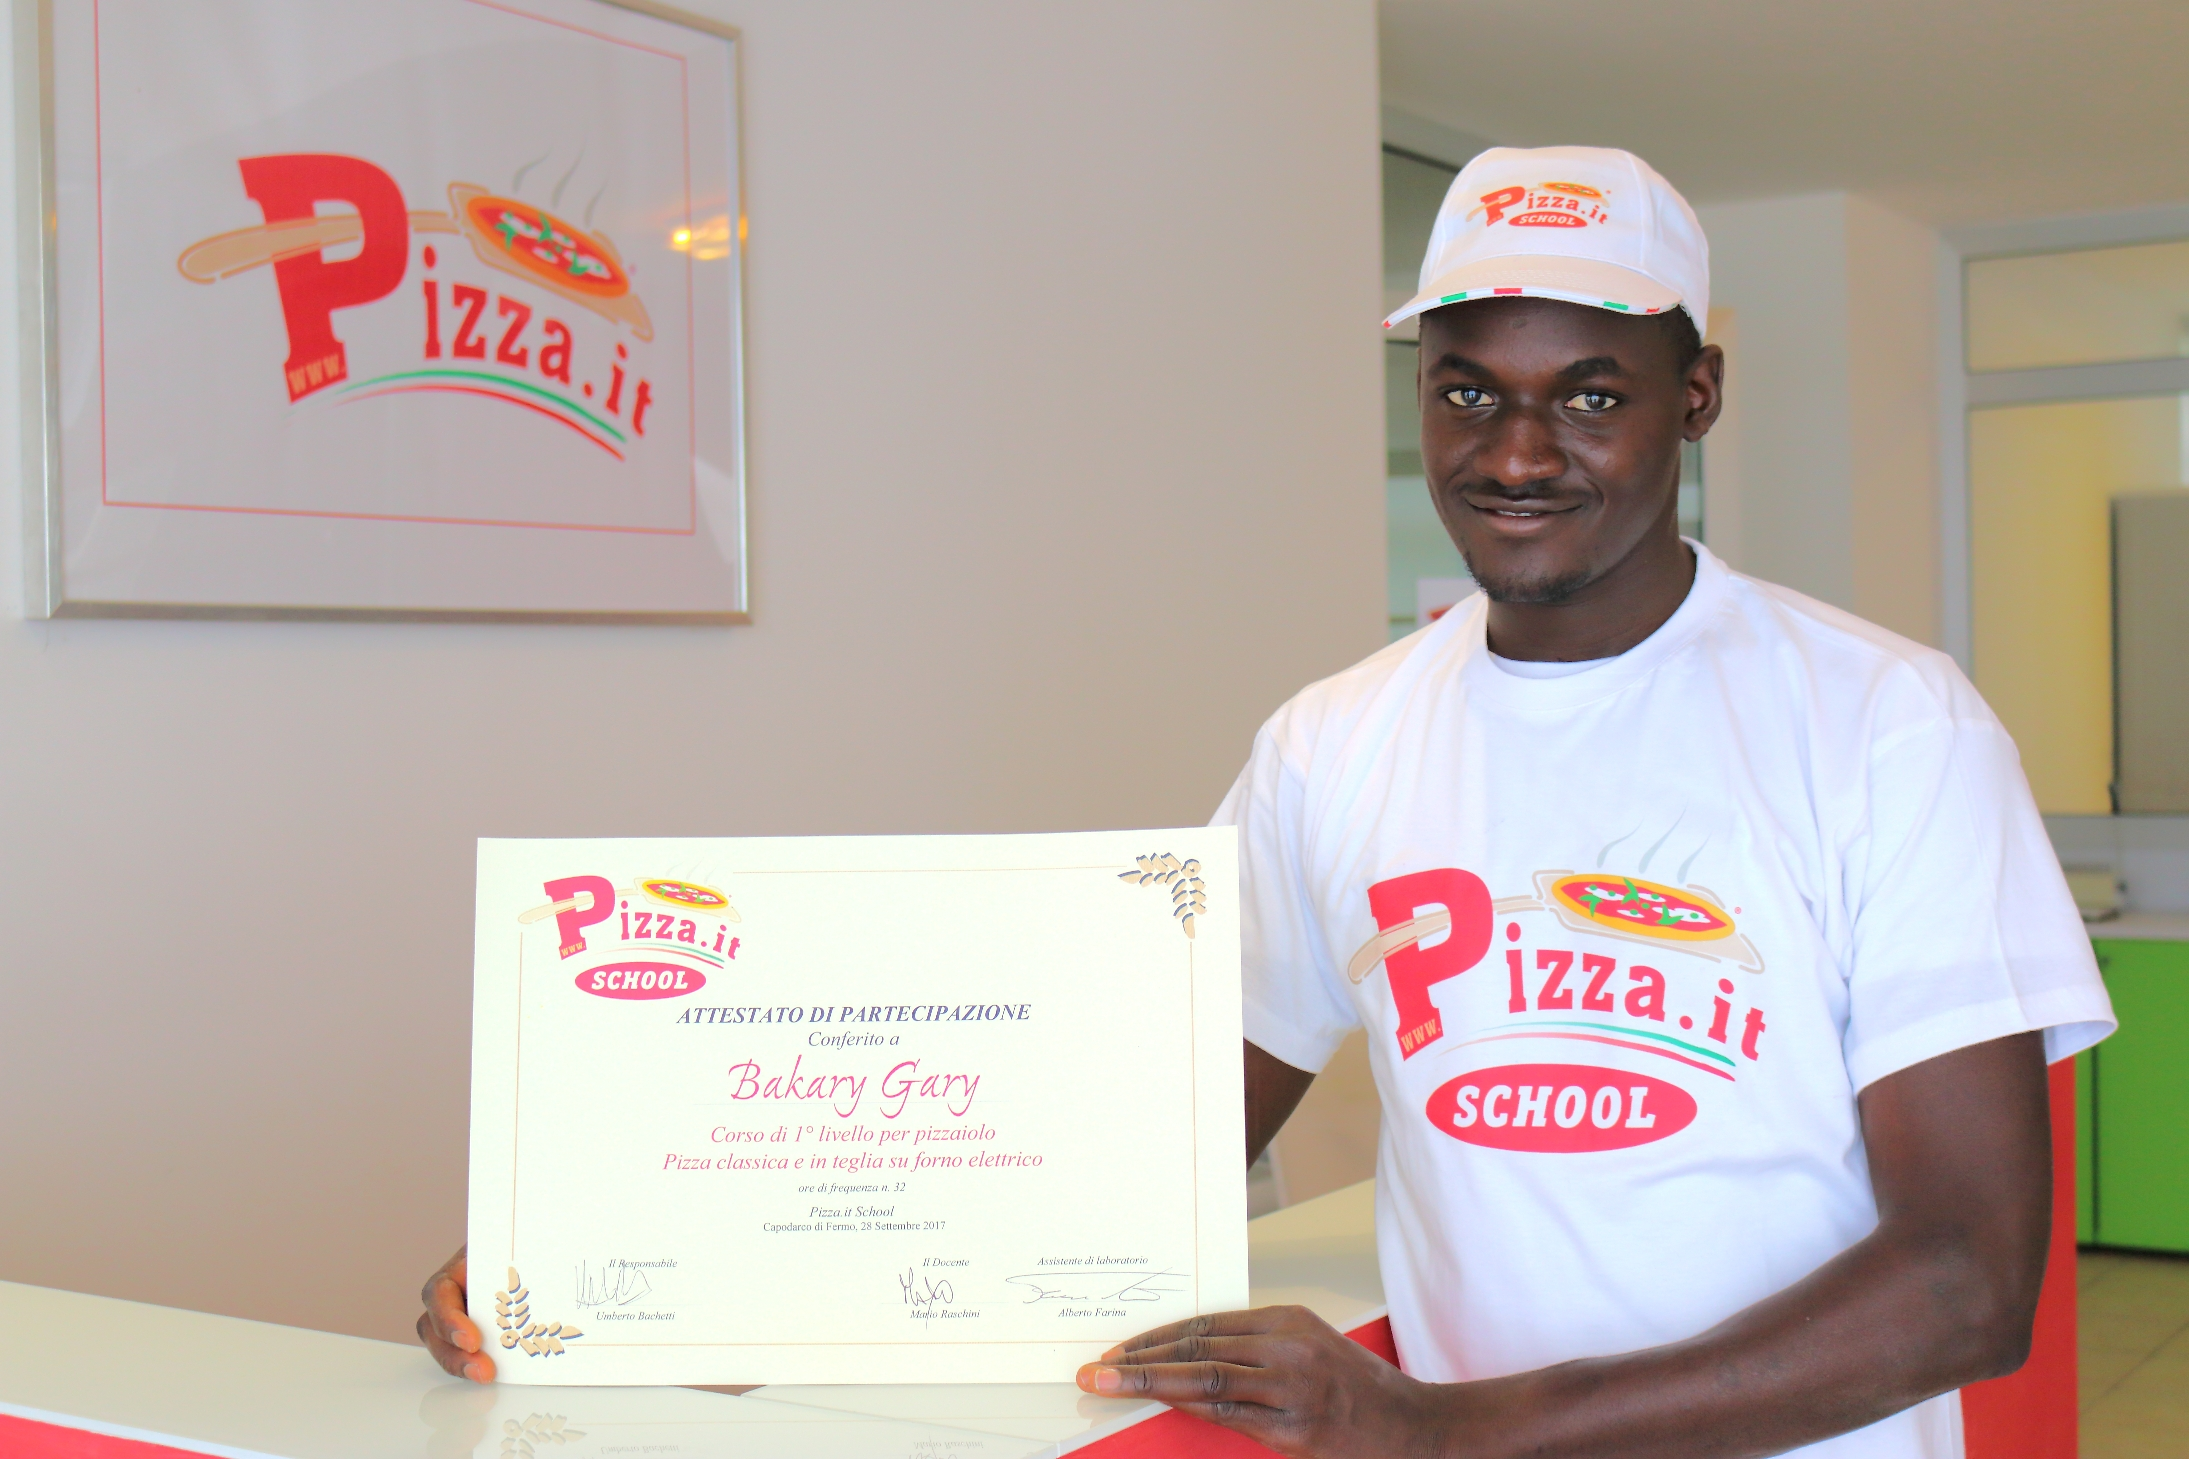 Bakary Gary - Pizza.it School